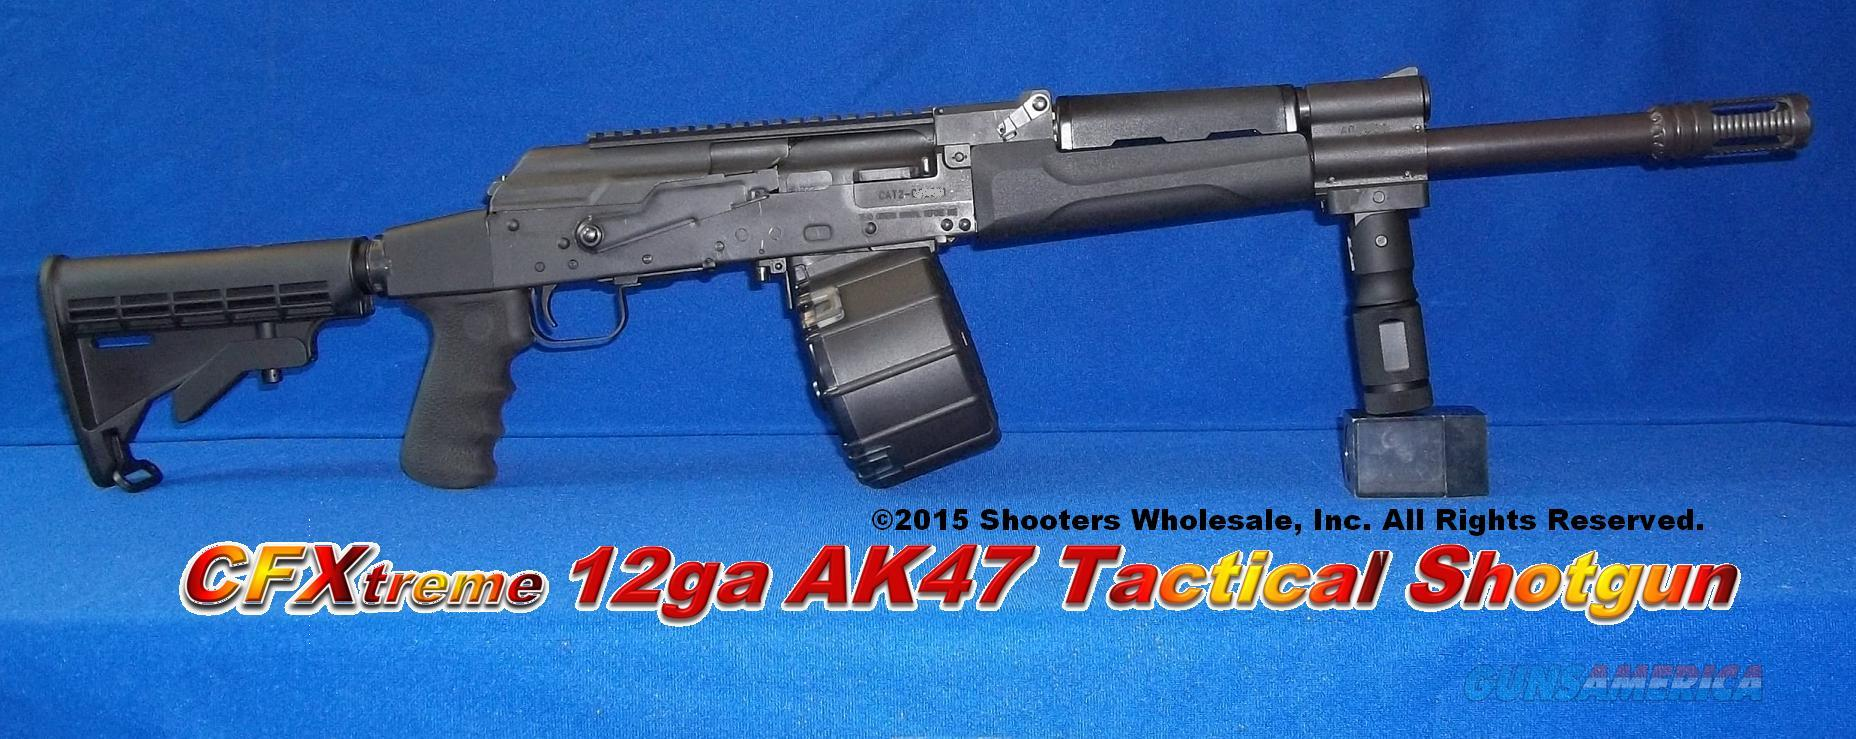 CF Xtreme AK47 12 Ga Tactical Shotgun-Accepts custom Saiga 12 style drums & mags! Shortest Barrel Length of 18 1/4 inches+Phantom Flash Hider / Muzzle Break+collapsible stock+Houge pistol grip+Promag 12rd drum+folding Aluminum vertical grip  Guns > Shotguns > Saiga Shotguns > Shotguns